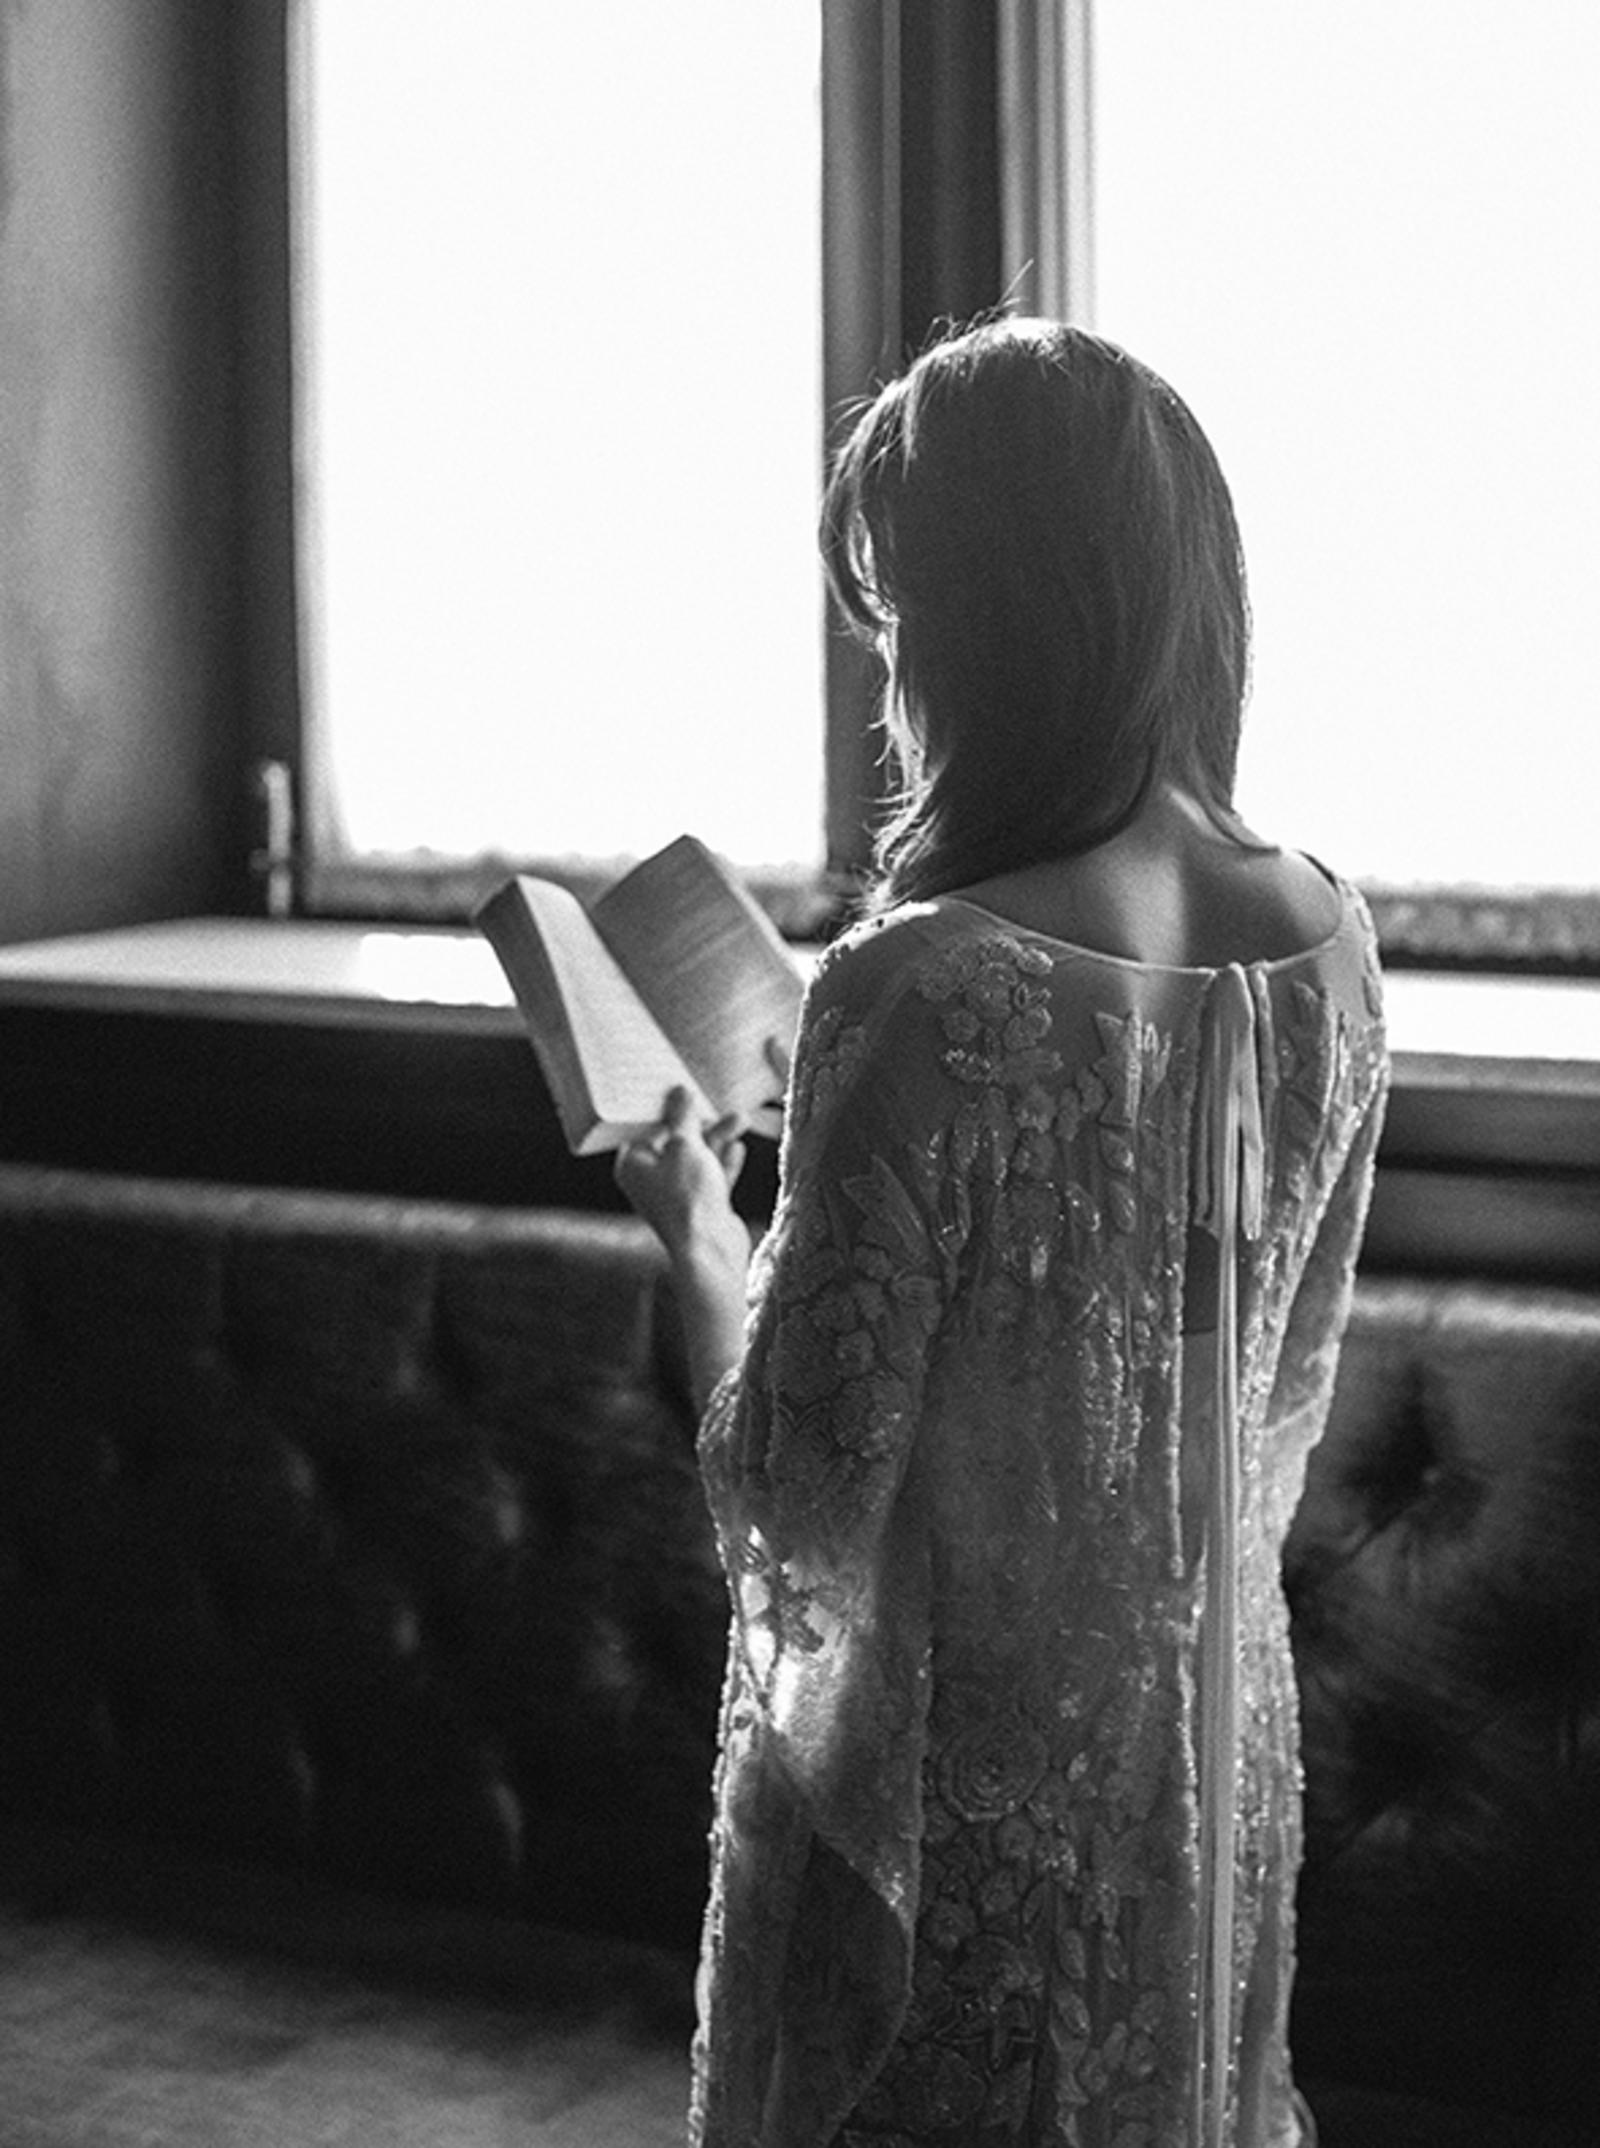 Editorial Photography | Atlanta, GA | A model in a simple wedding dress stands, reading a book.